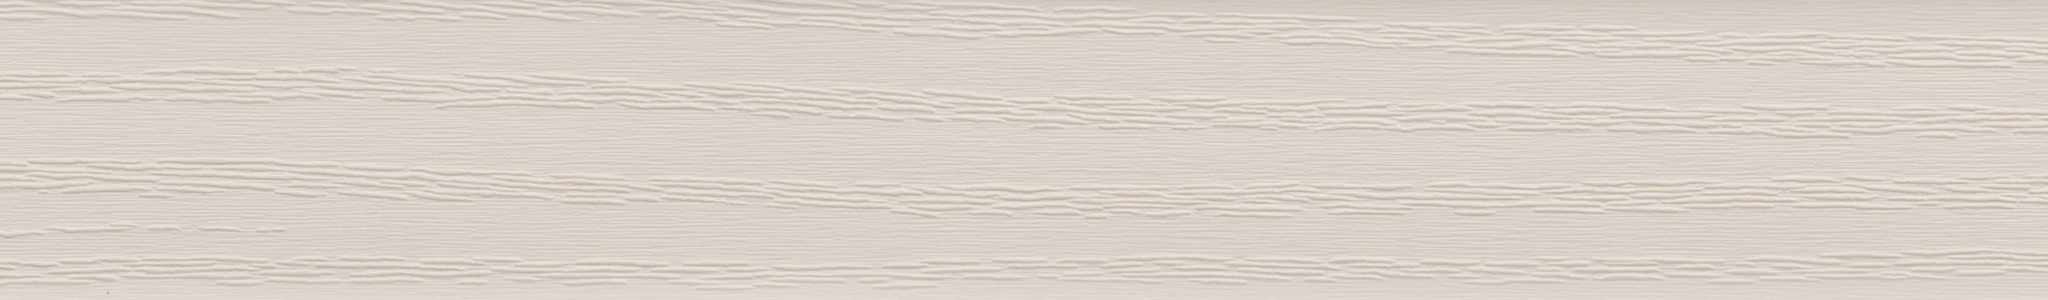 HU 127049 Chant ABS Beige Graine 109